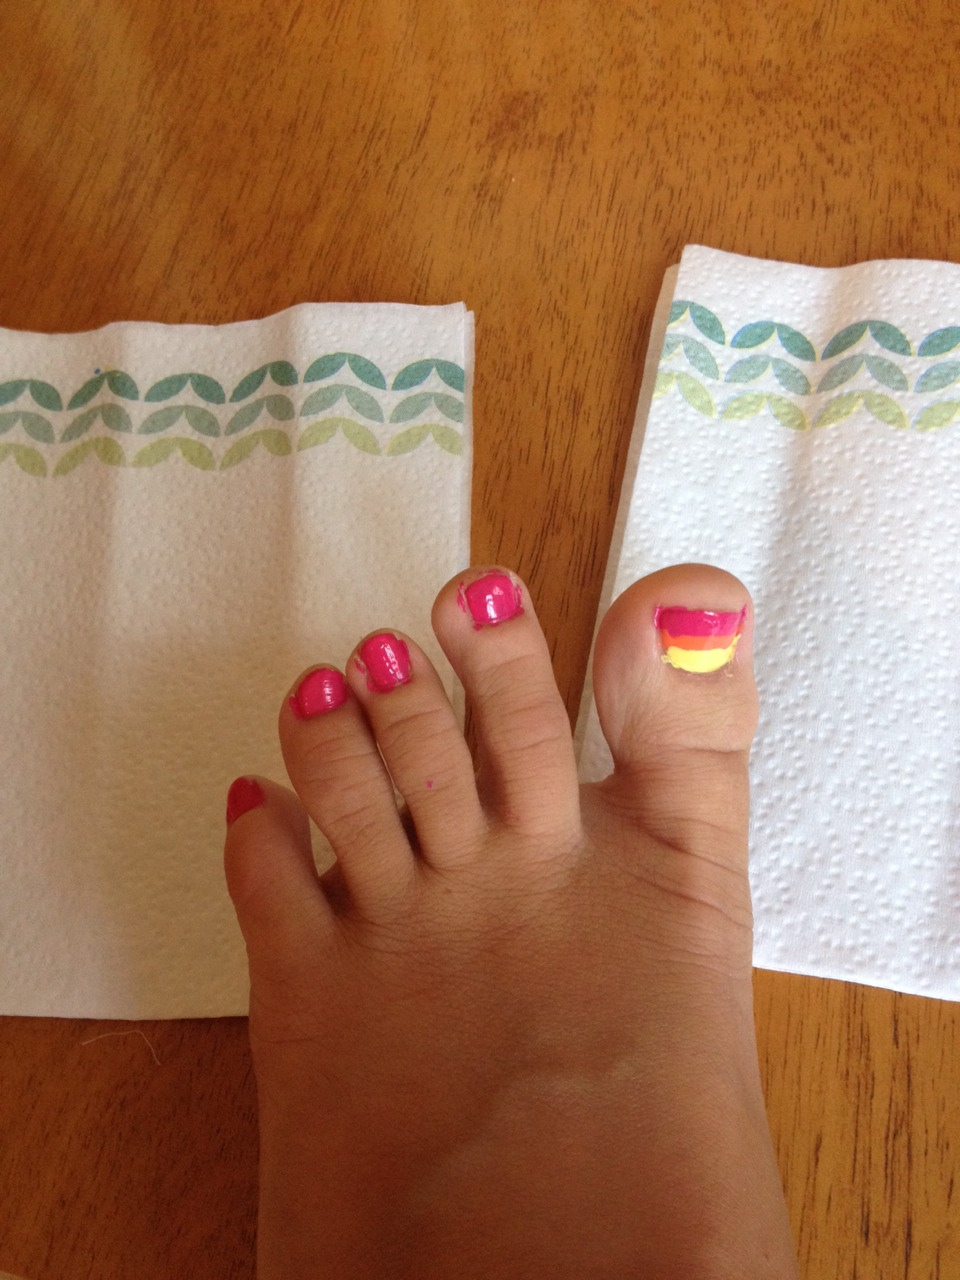 Paint your other toenails one of the following colors: Hot pink Orange Yellow